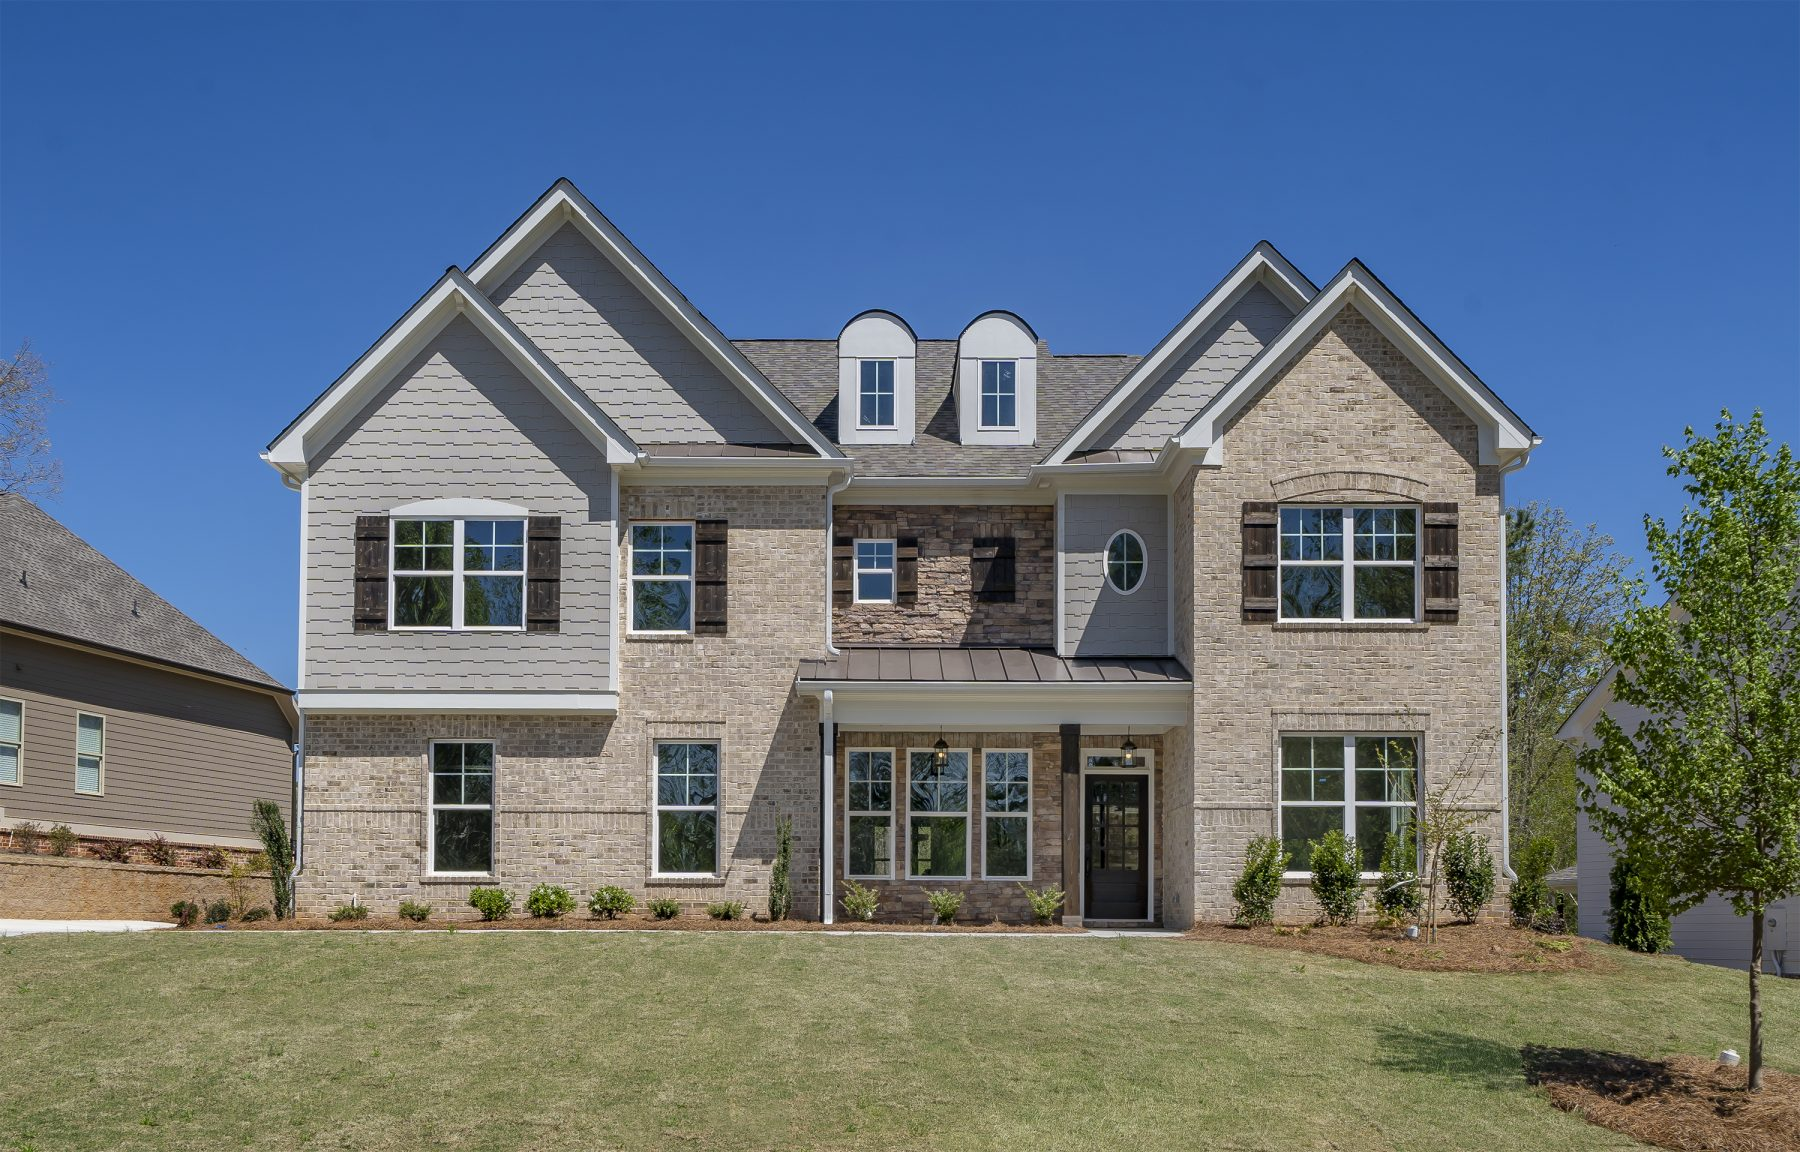 Builders and homes in Traditions of Braselton